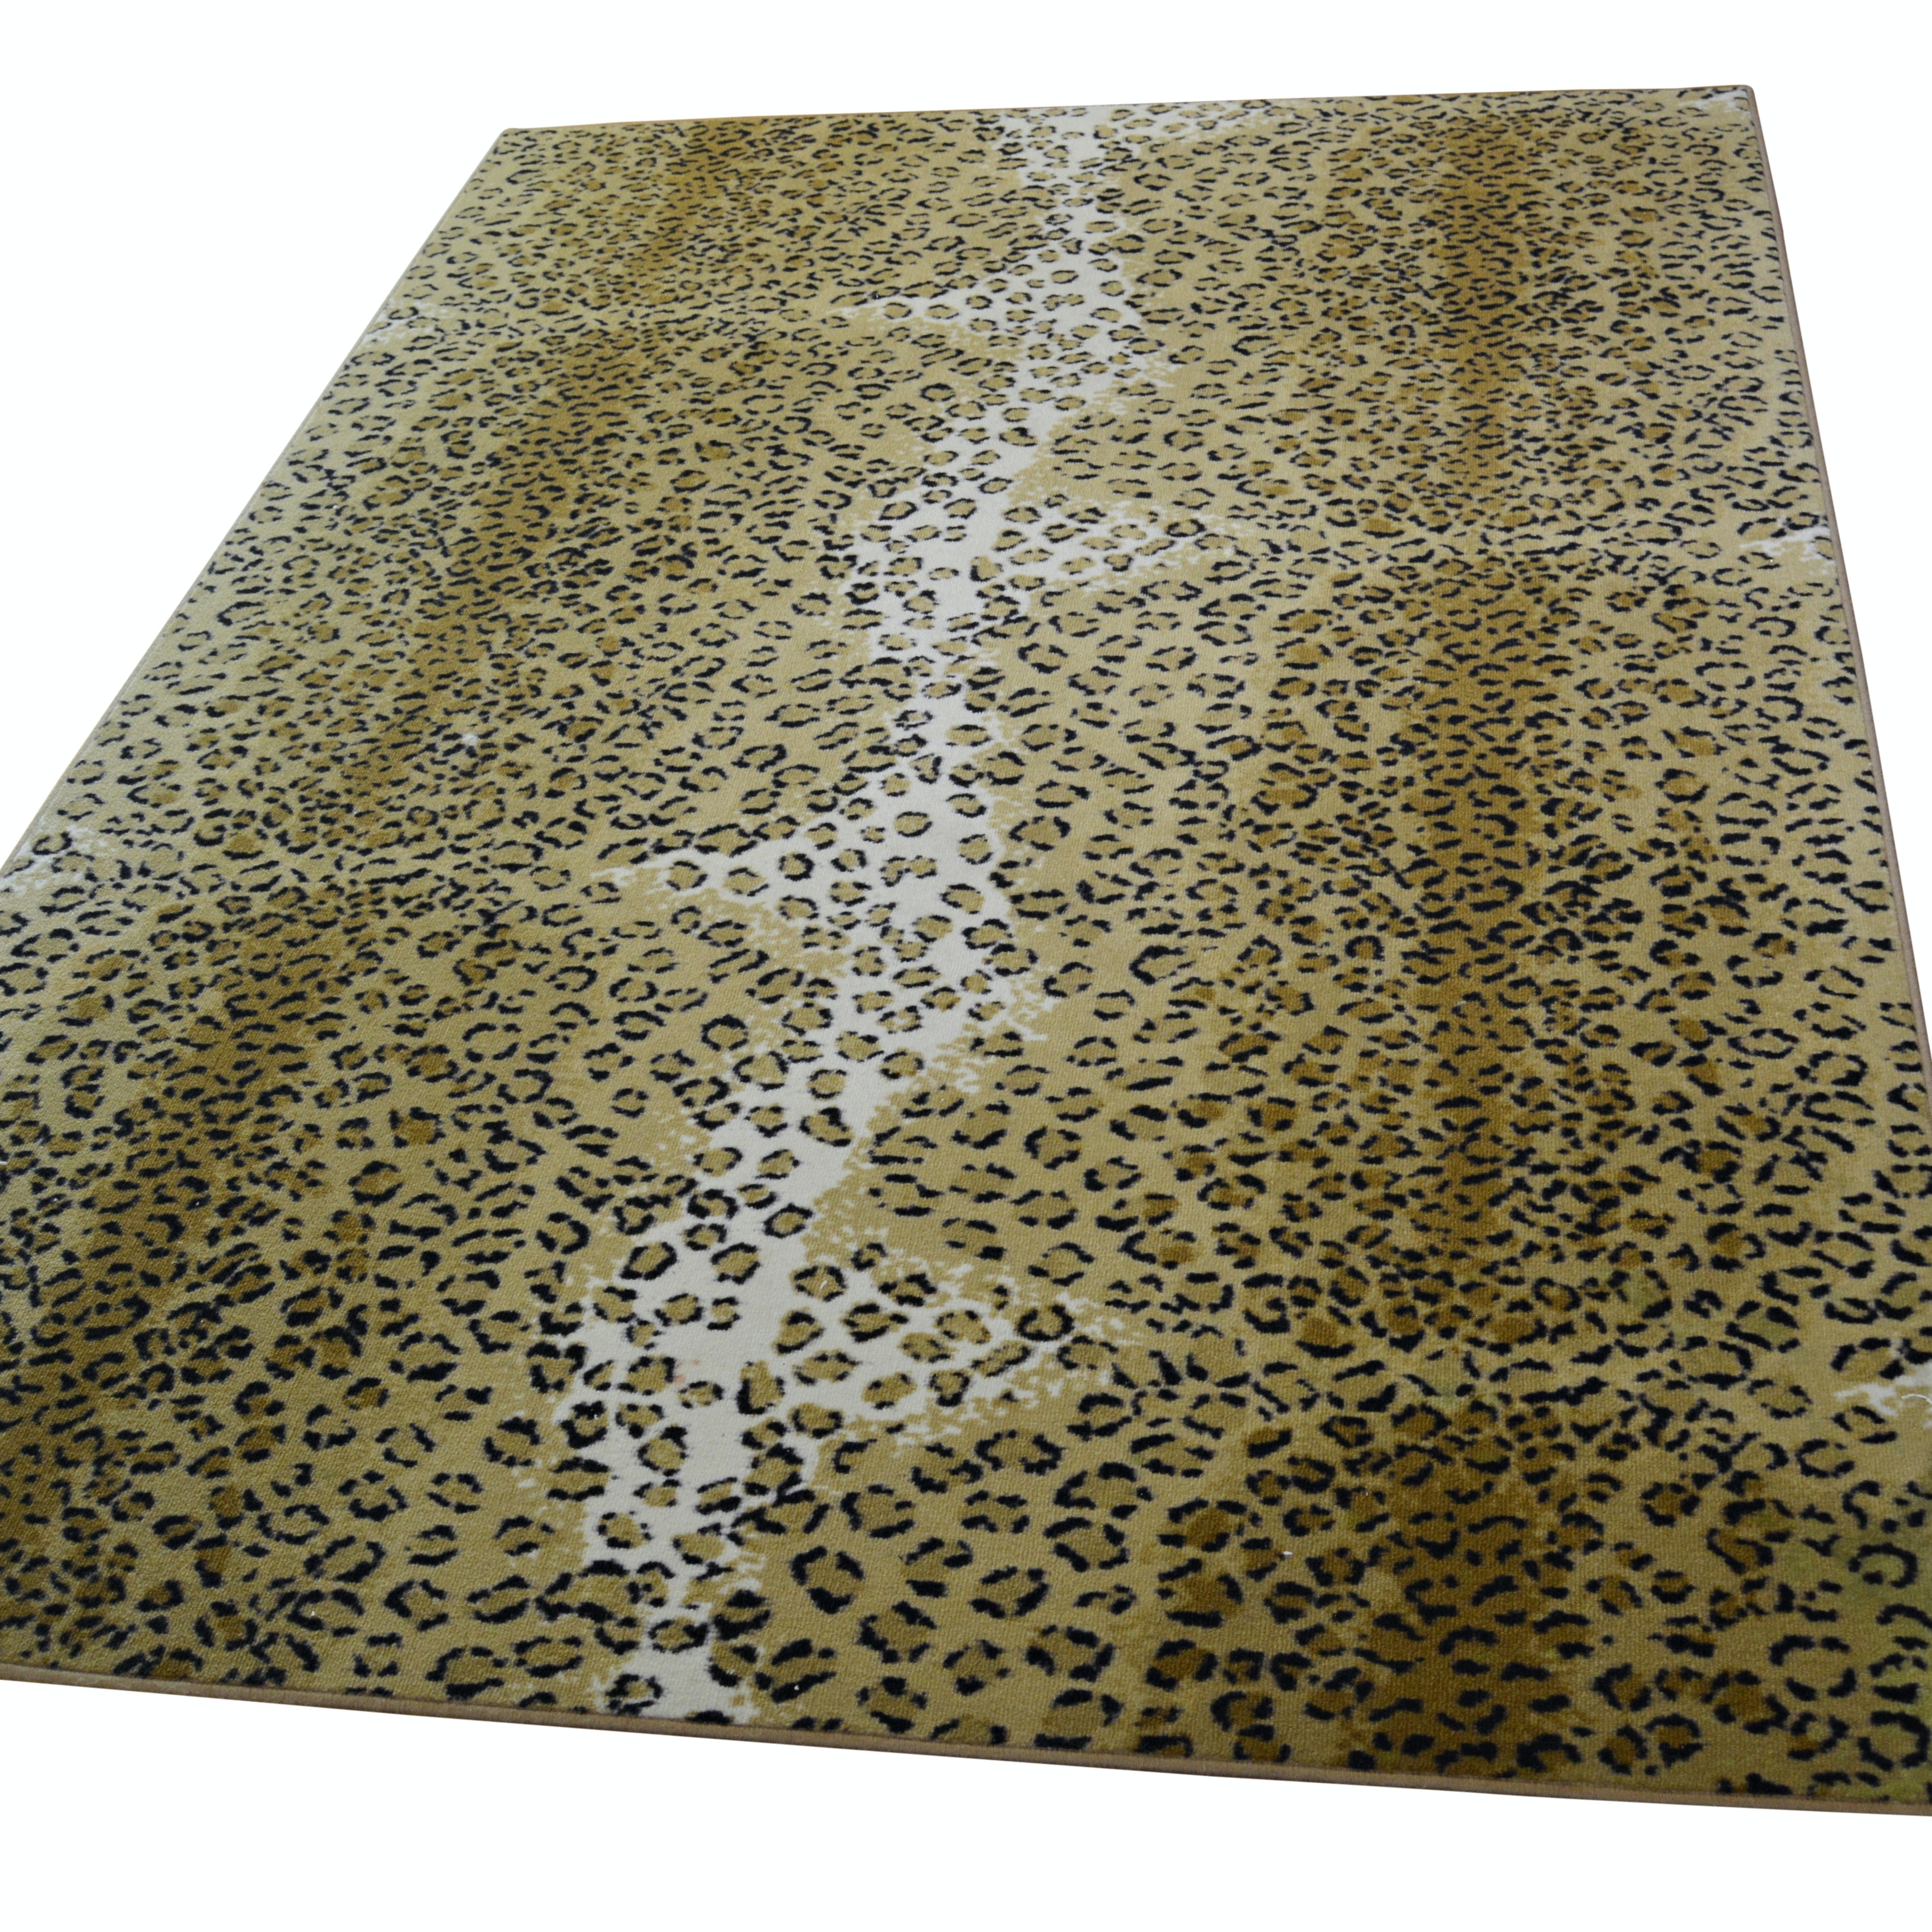 Machine Made Synthetic Cheetah Design Area Rug